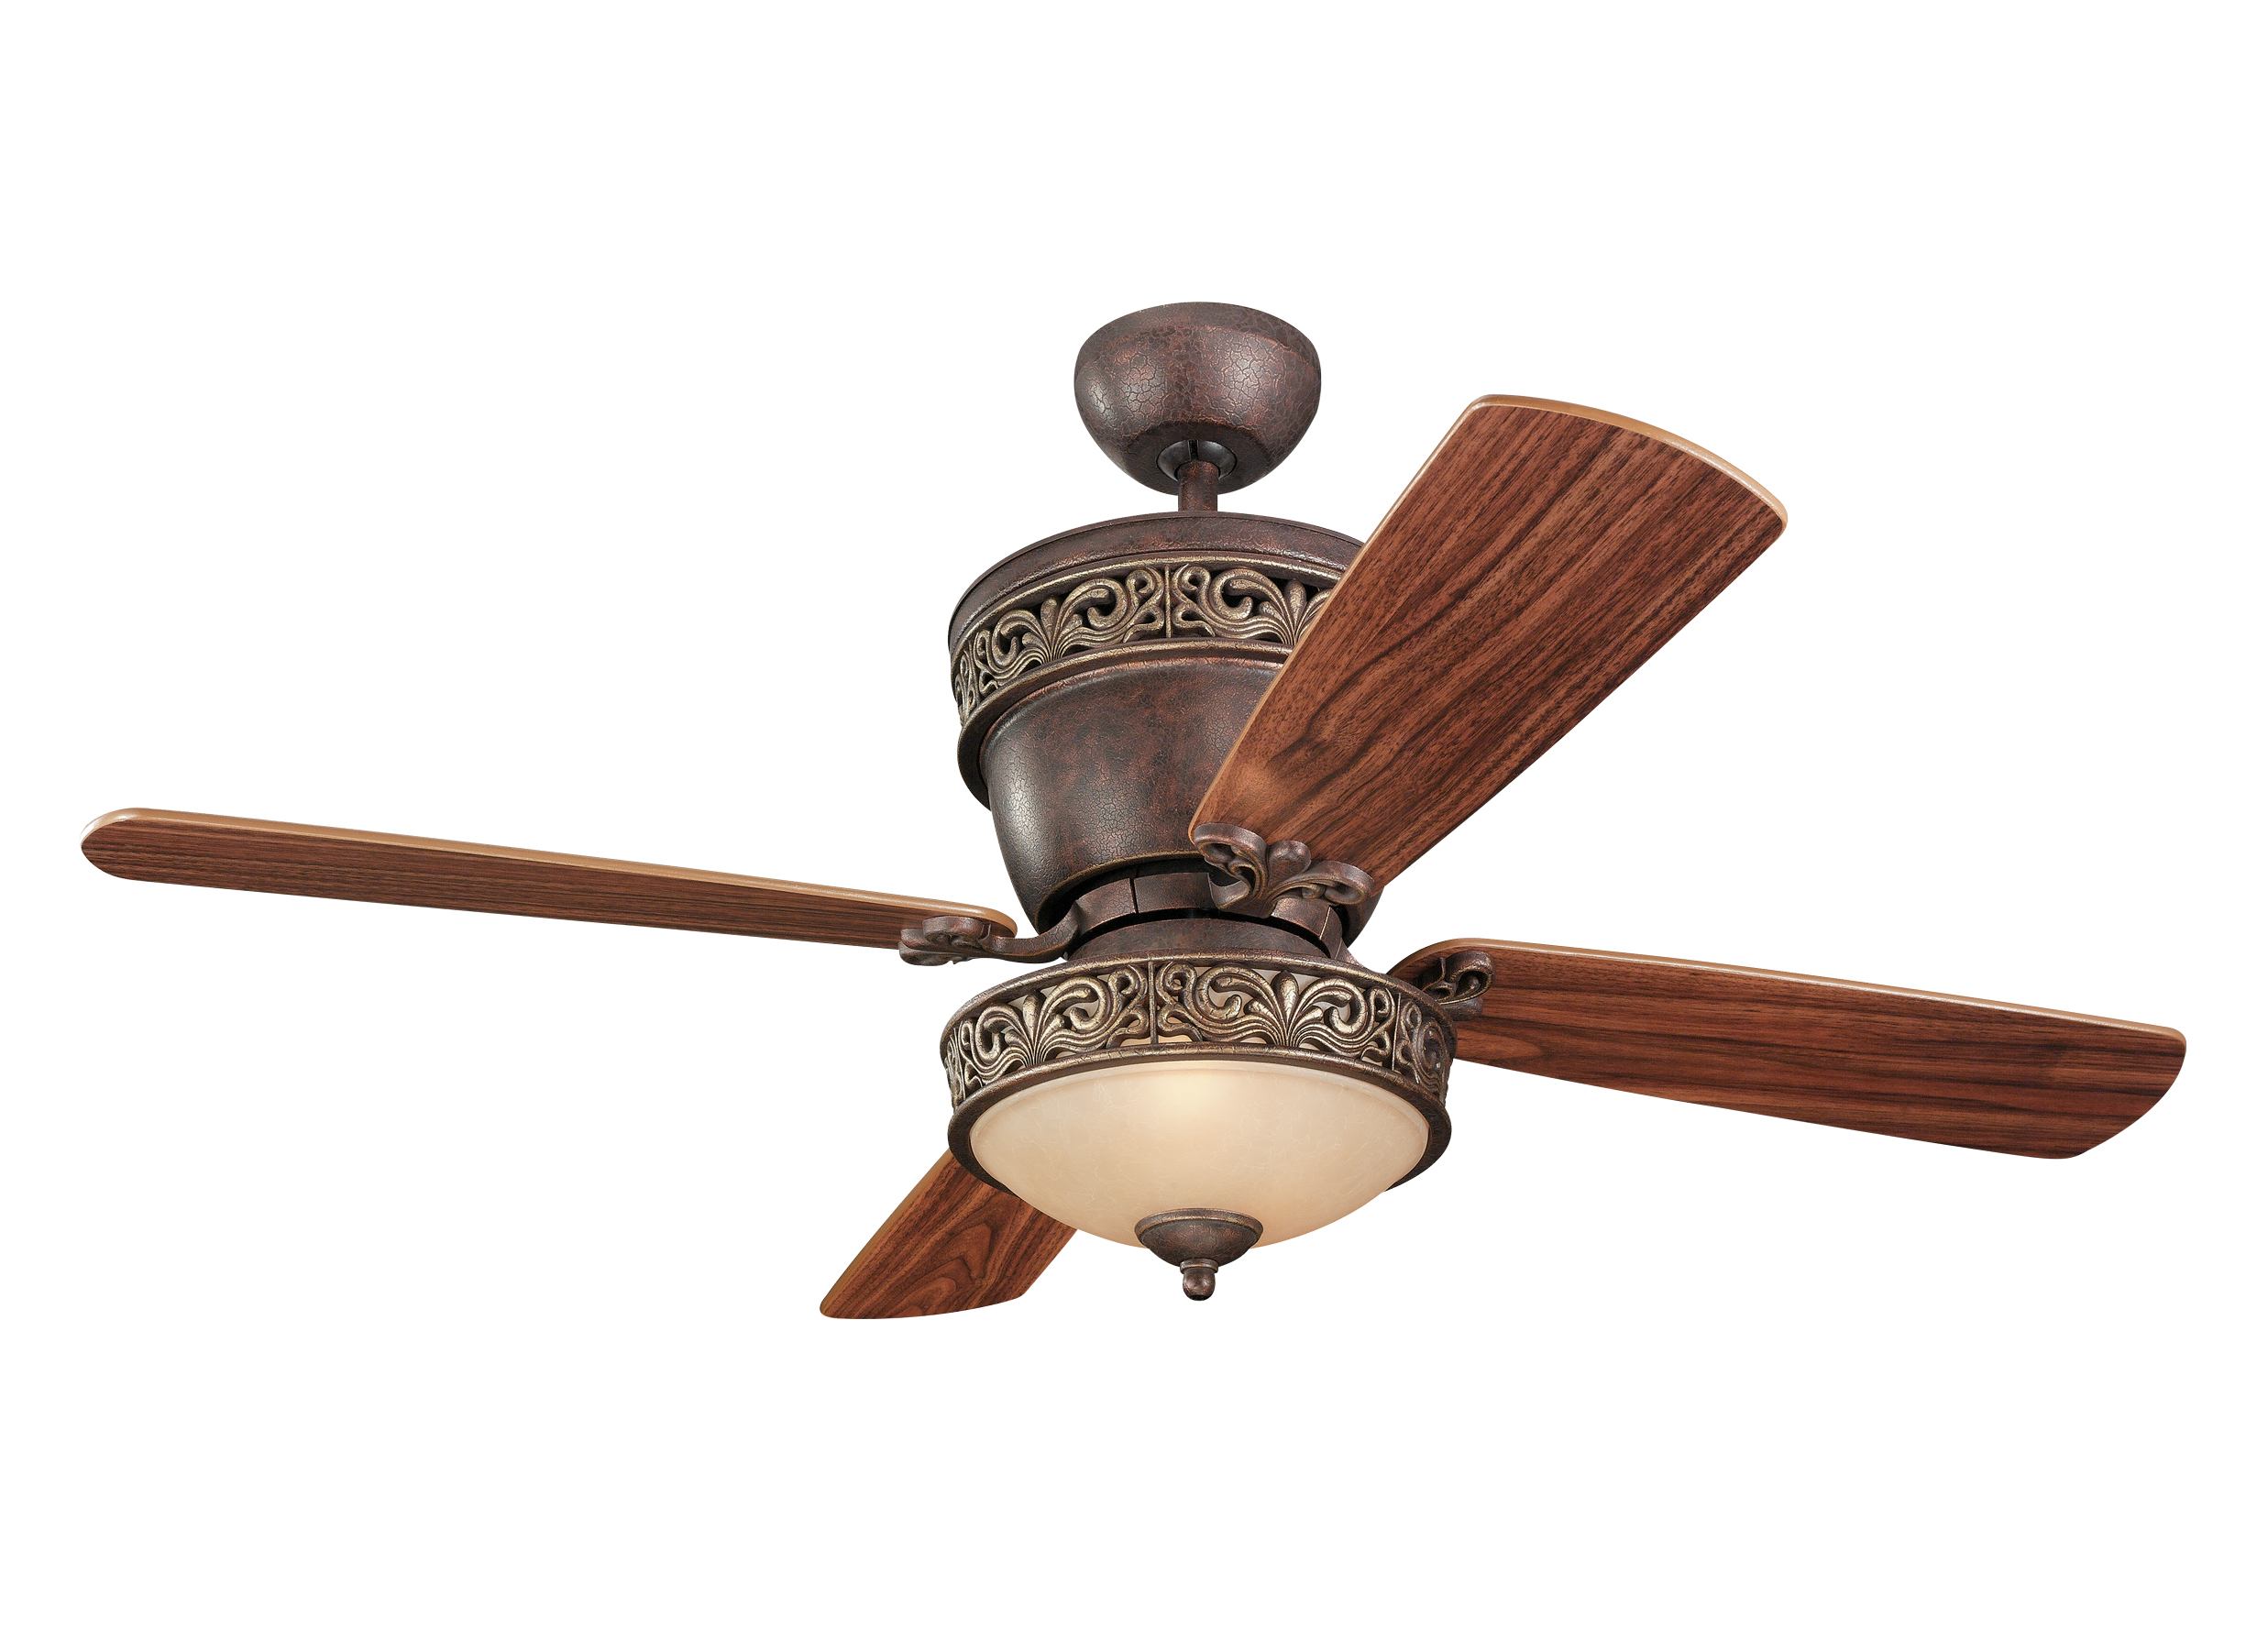 direct bronze fan spyda black product lights p ceiling